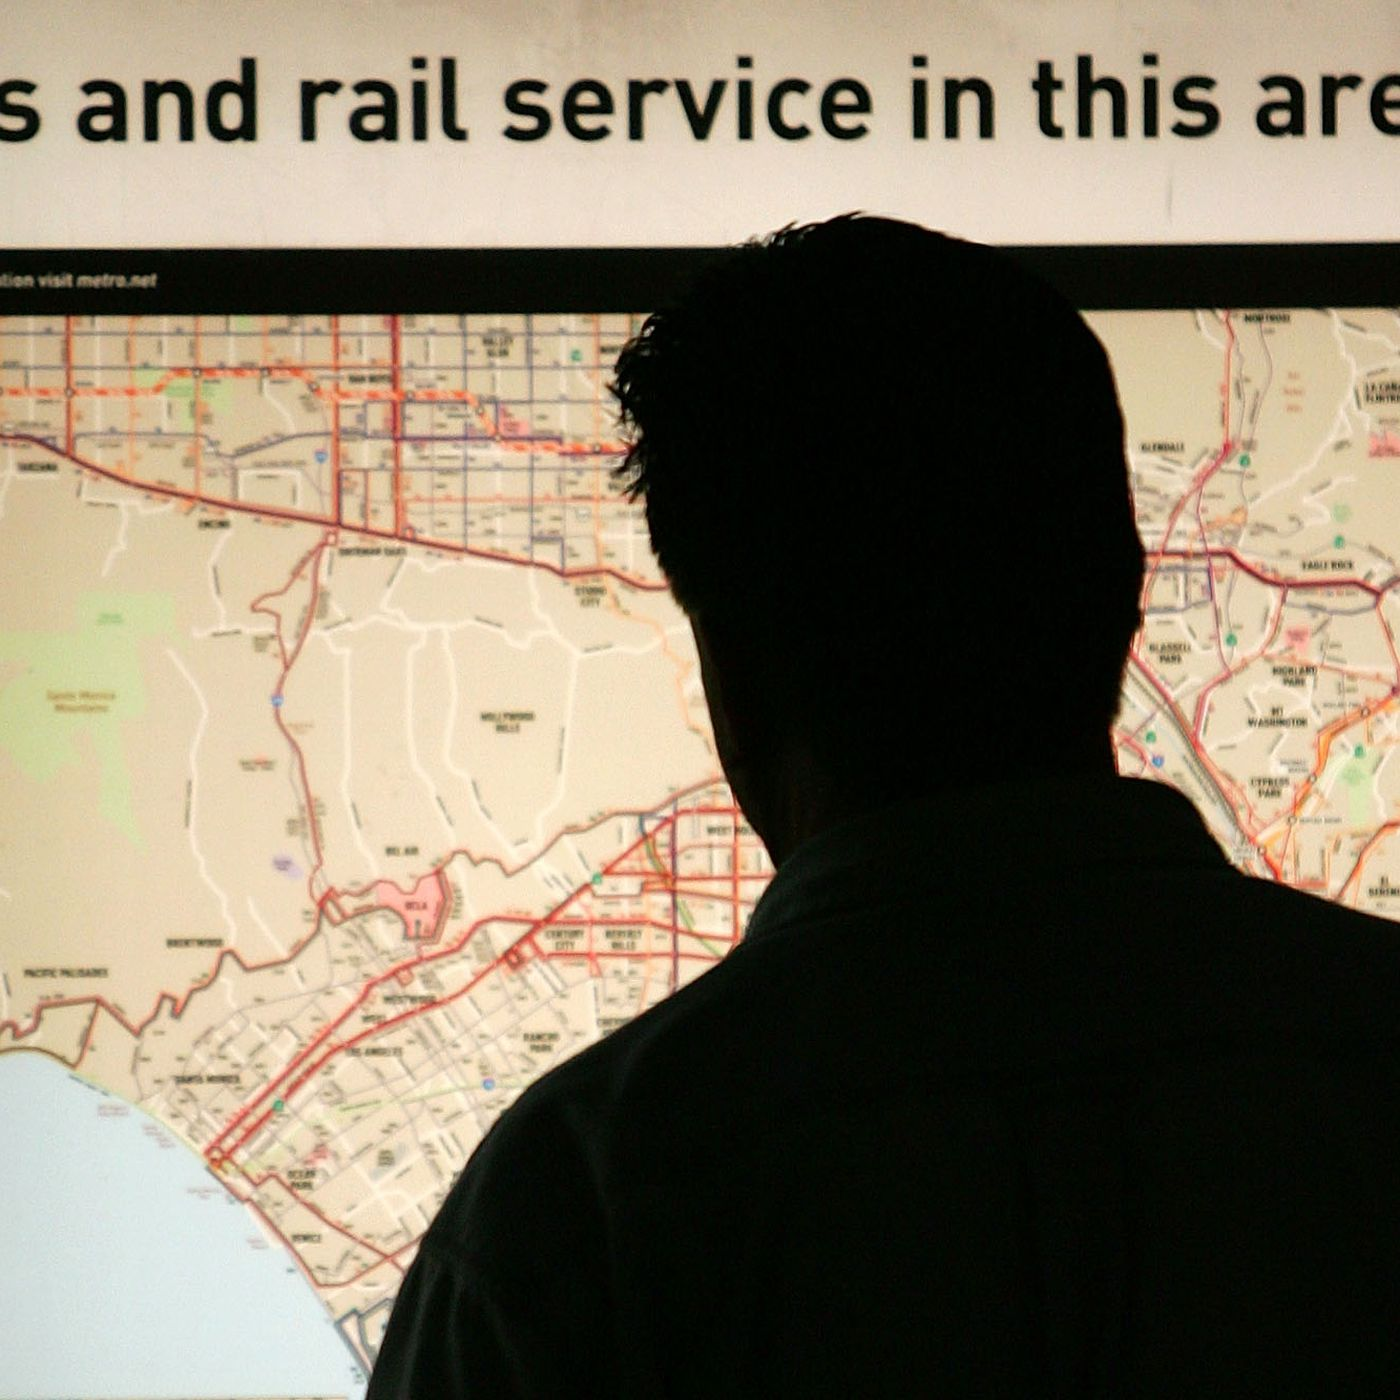 Lafc Subway Map.Lafc To Have Good Public Transit Options Compared To Other Mls Teams